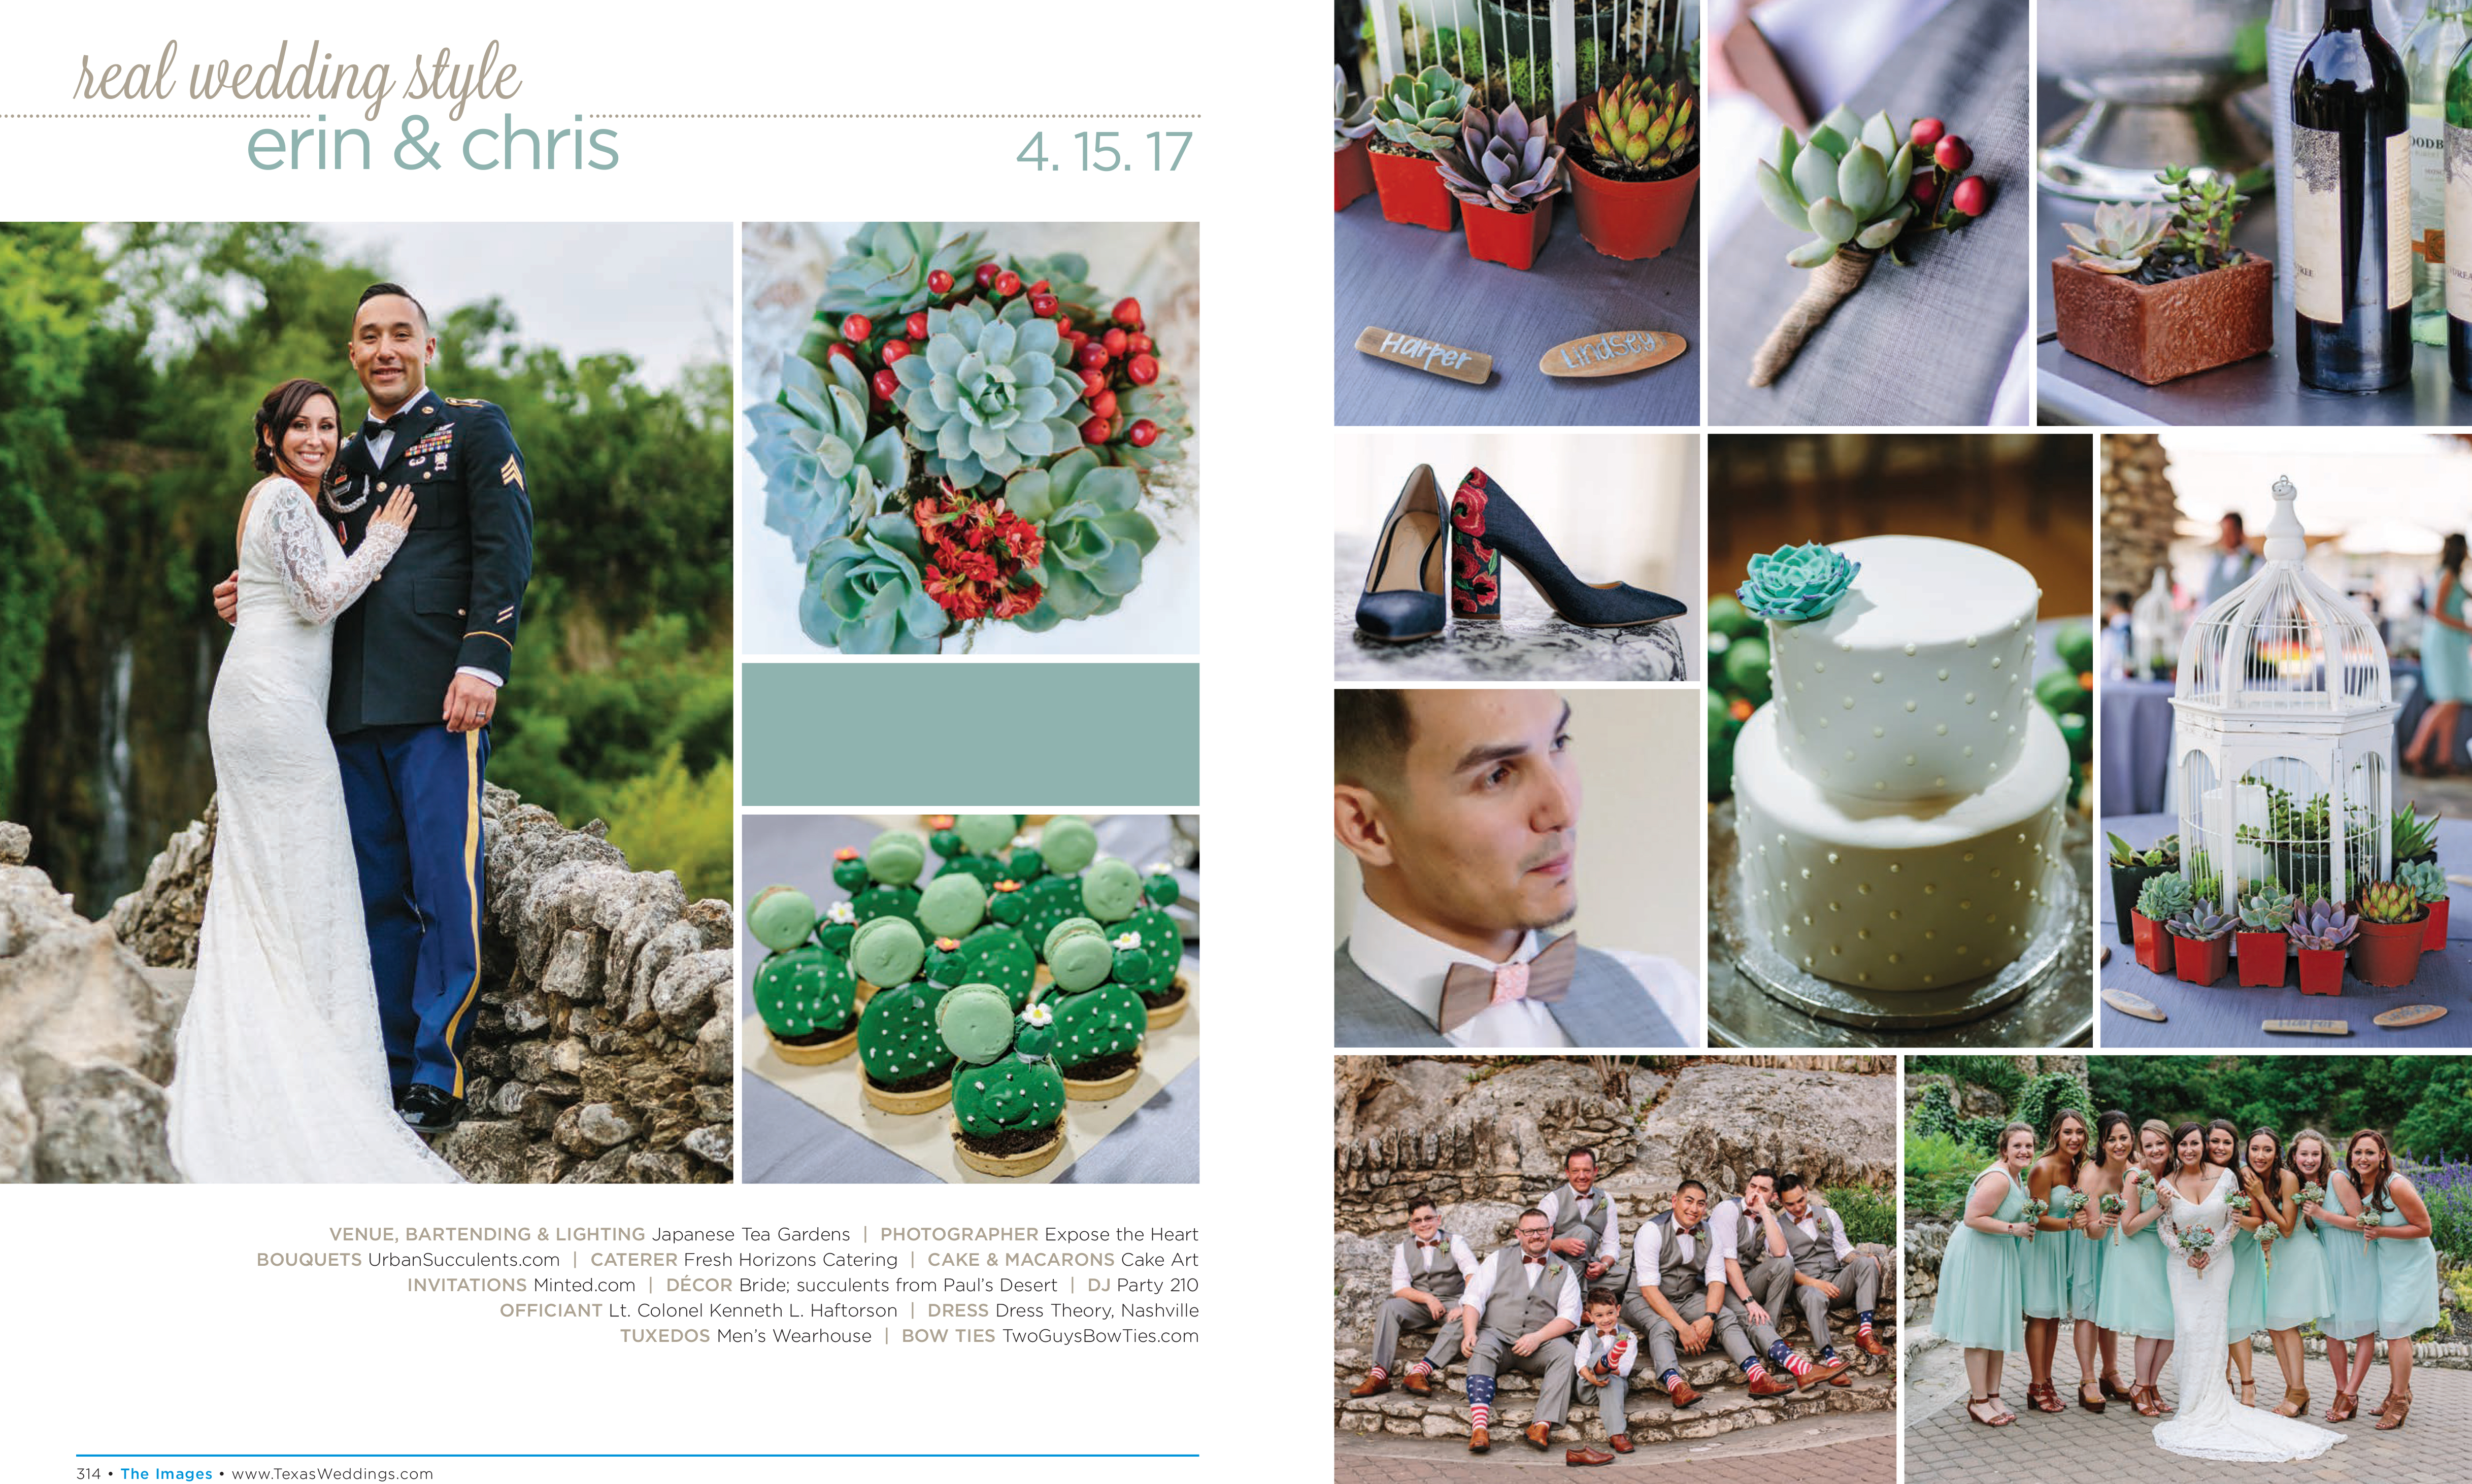 Erin & Chris in their Real Wedding Page in the Fall/Winter 2017 Texas Wedding Guide